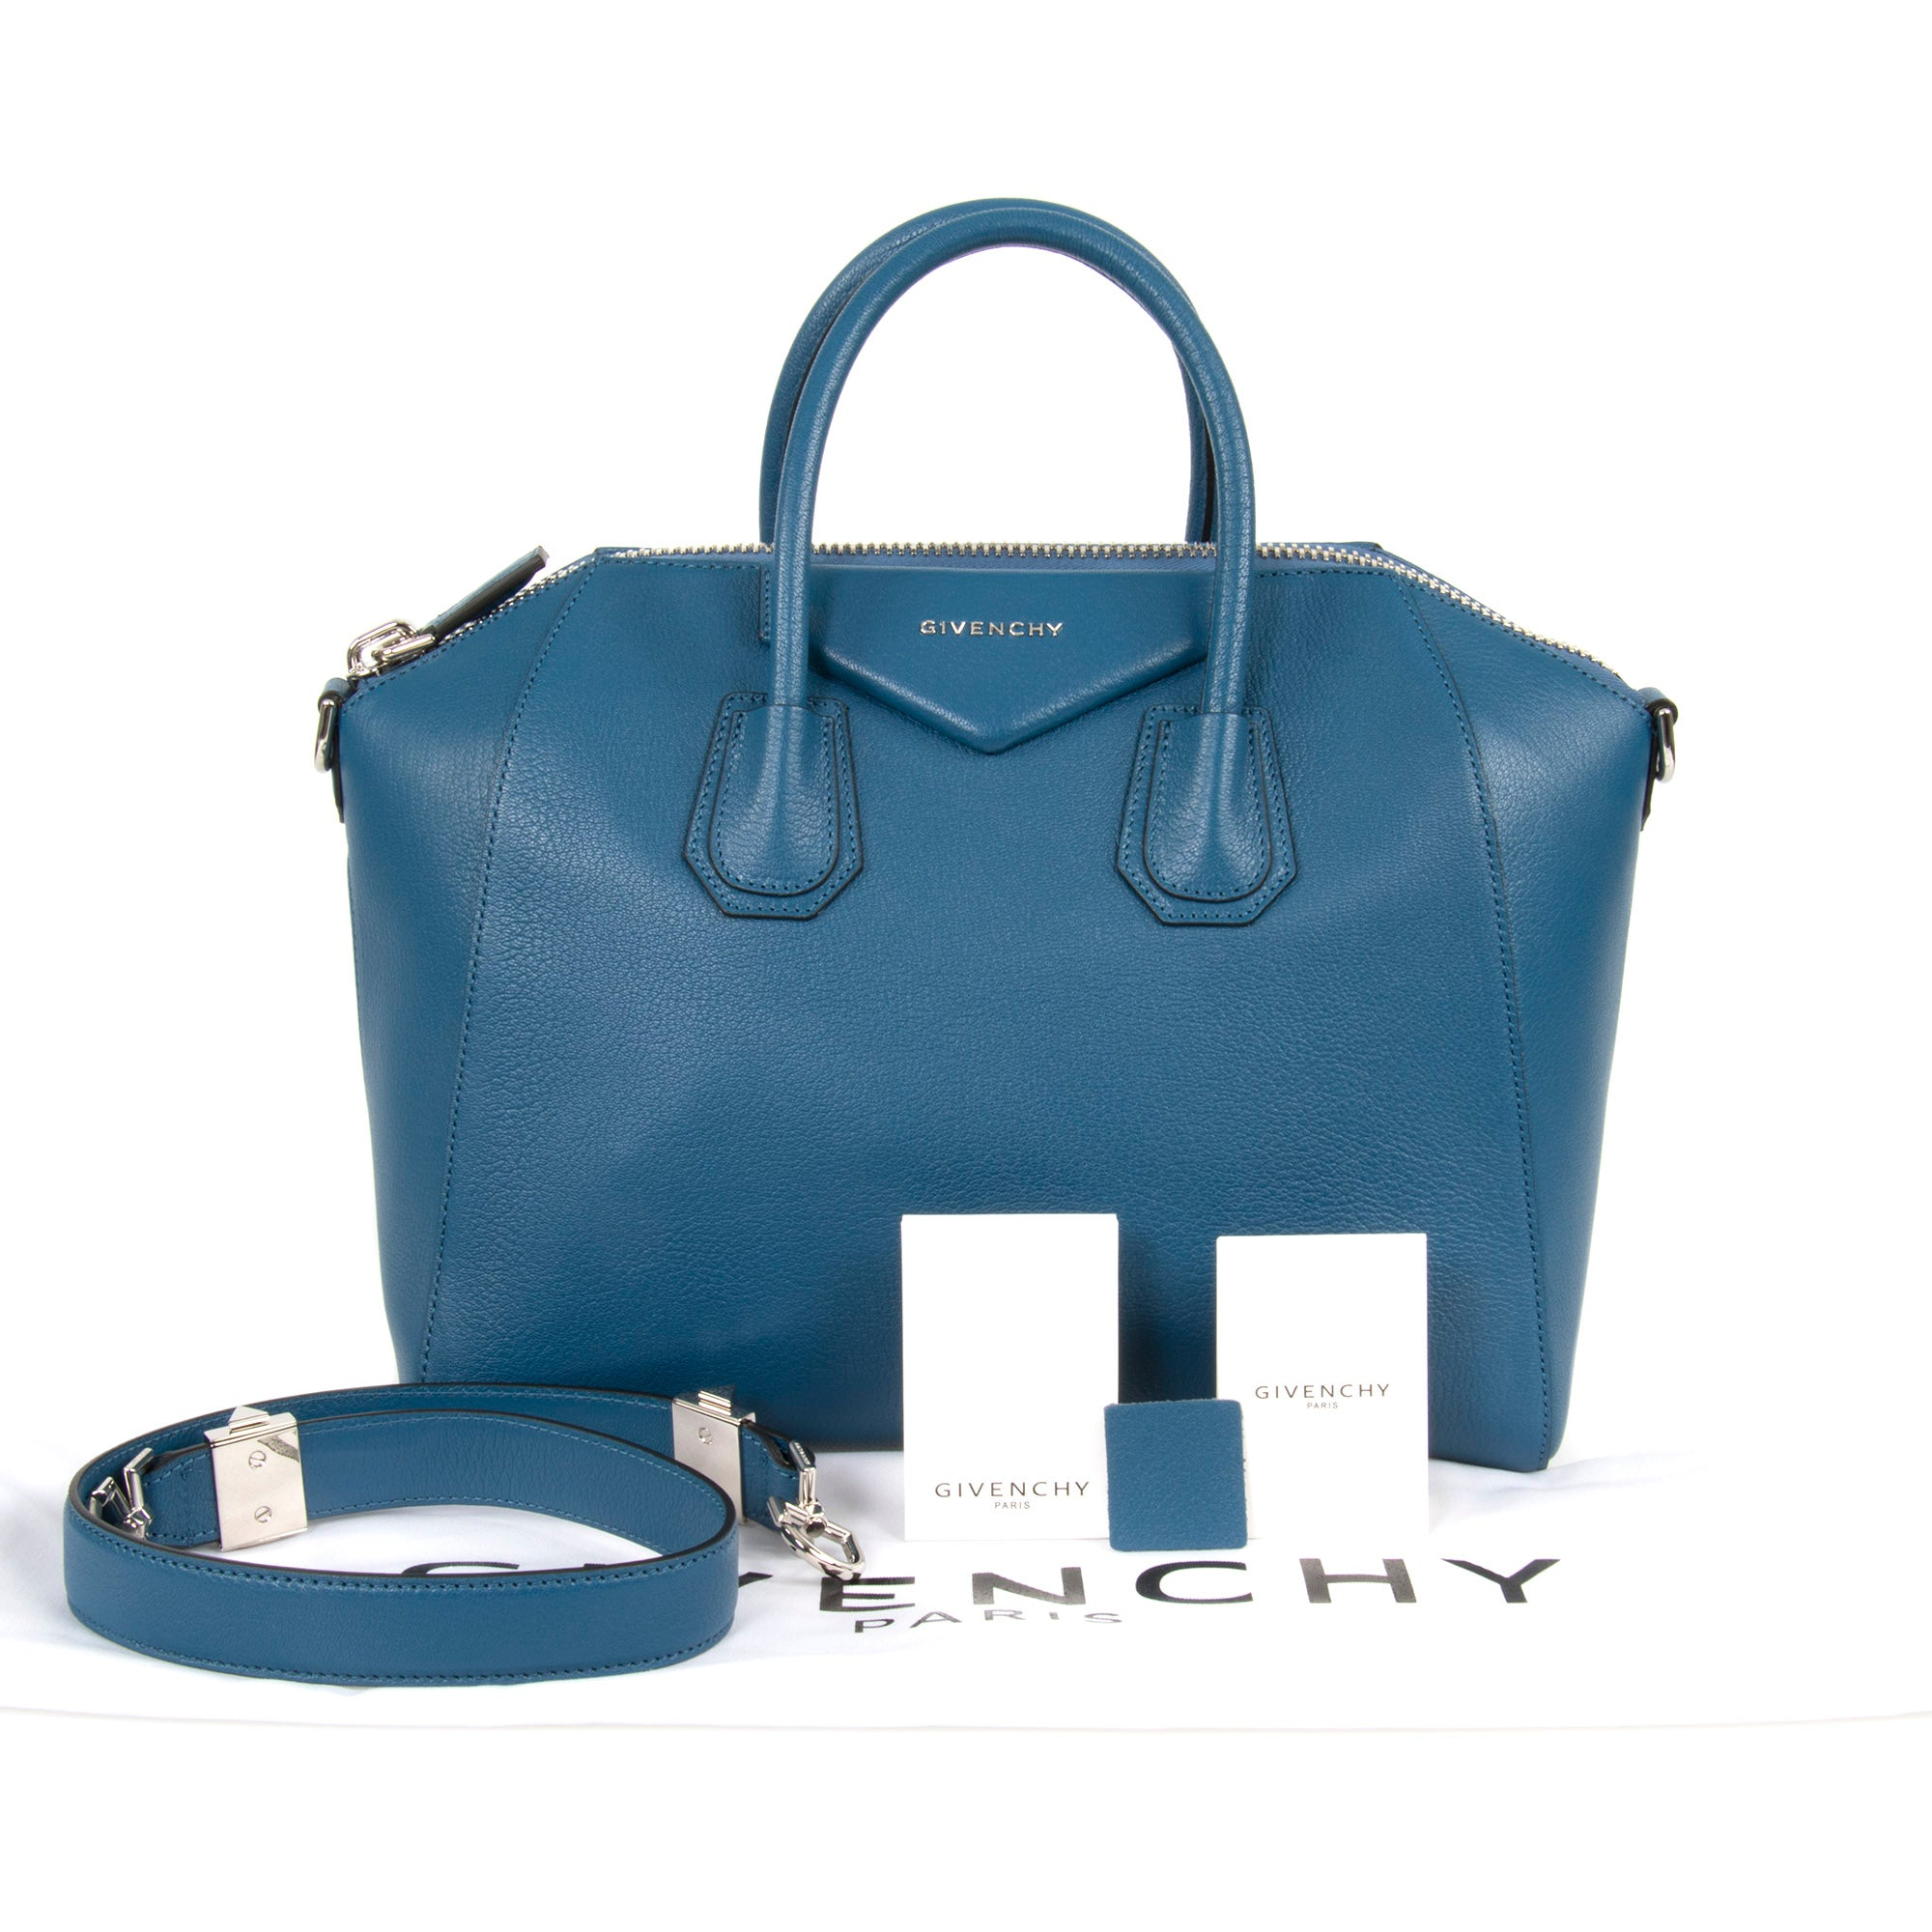 Givenchy Antigona Sugar Goatskin Leather Satchel Bag | Teal Blue with Silver Hardware | Medium